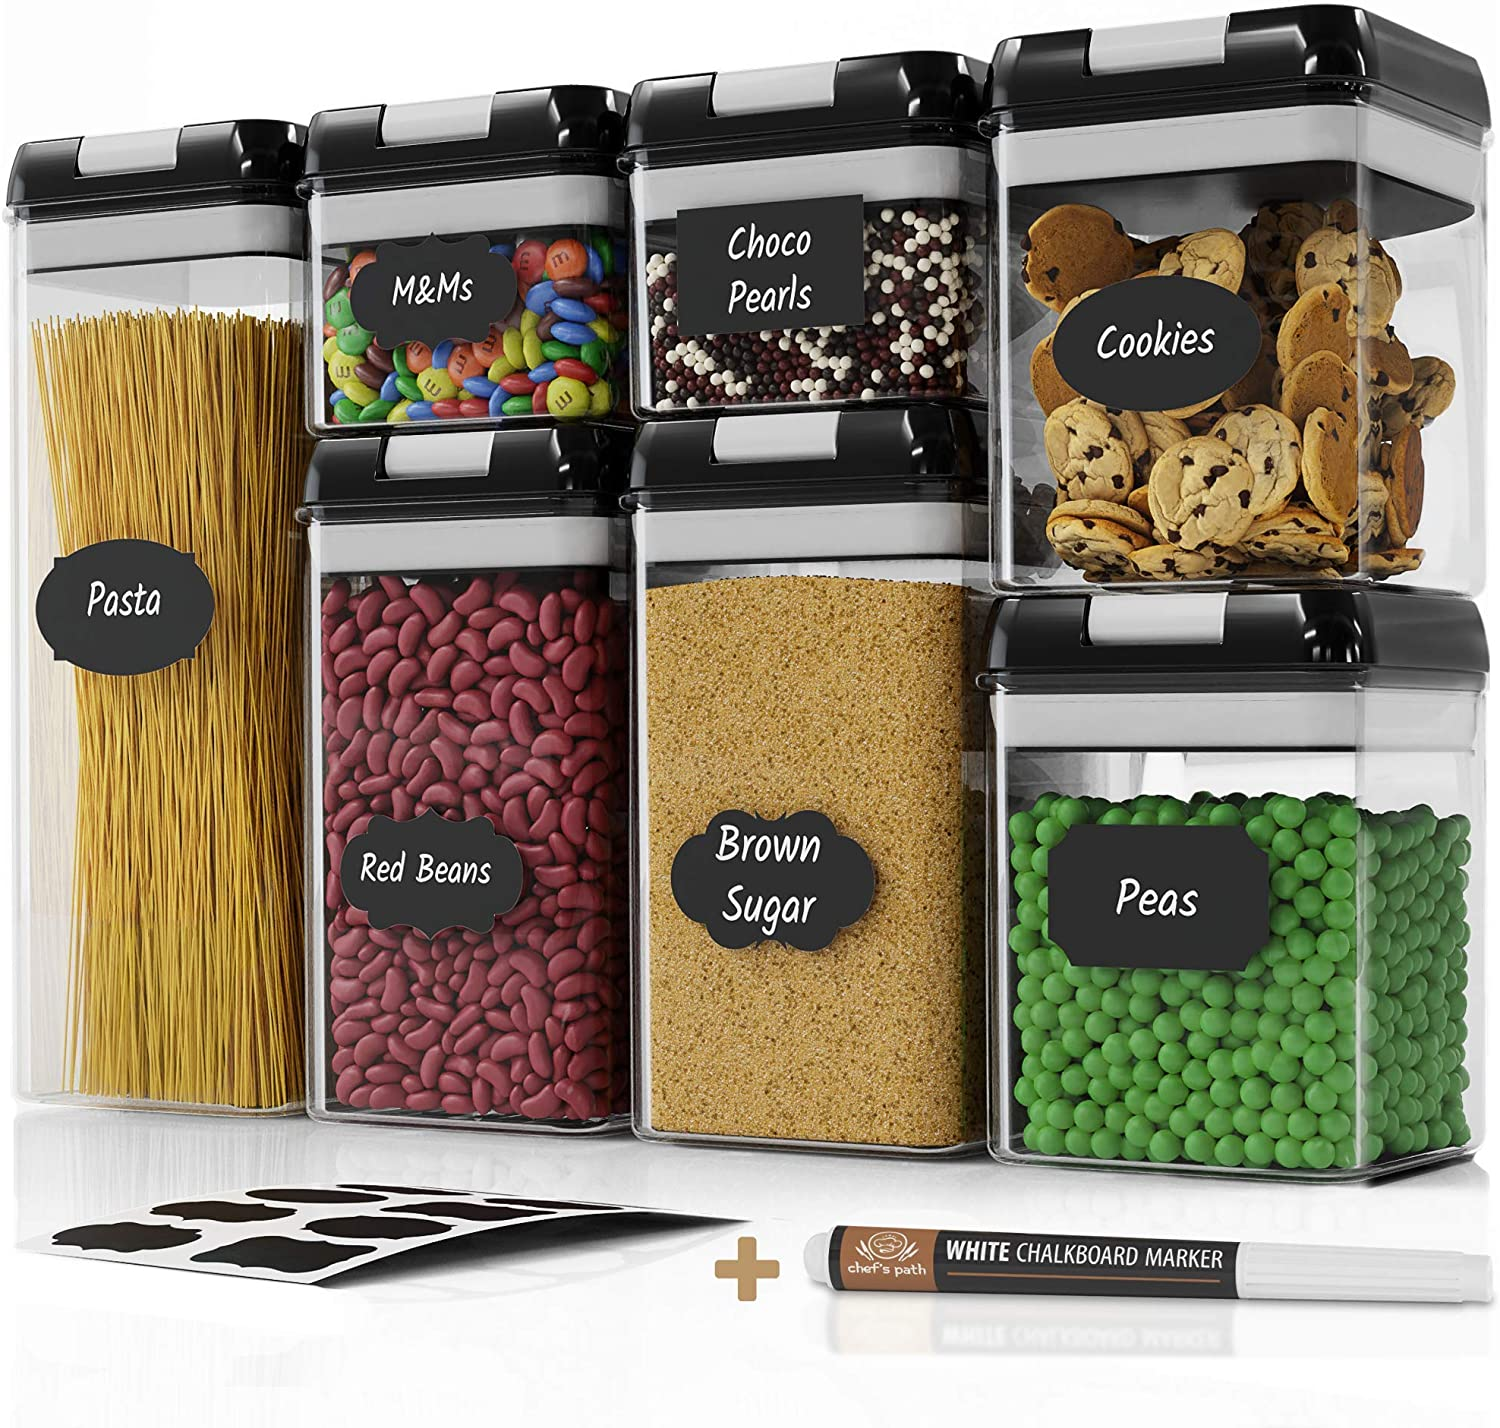 Chef's Path Airtight Food Storage Container Set - 7 PC Set - Labels & Marker - Kitchen & Pantry Organization Containers - BPA-Free - Clear Plastic Canisters for Flour, Cereal with Improved Lids: Home Improvement